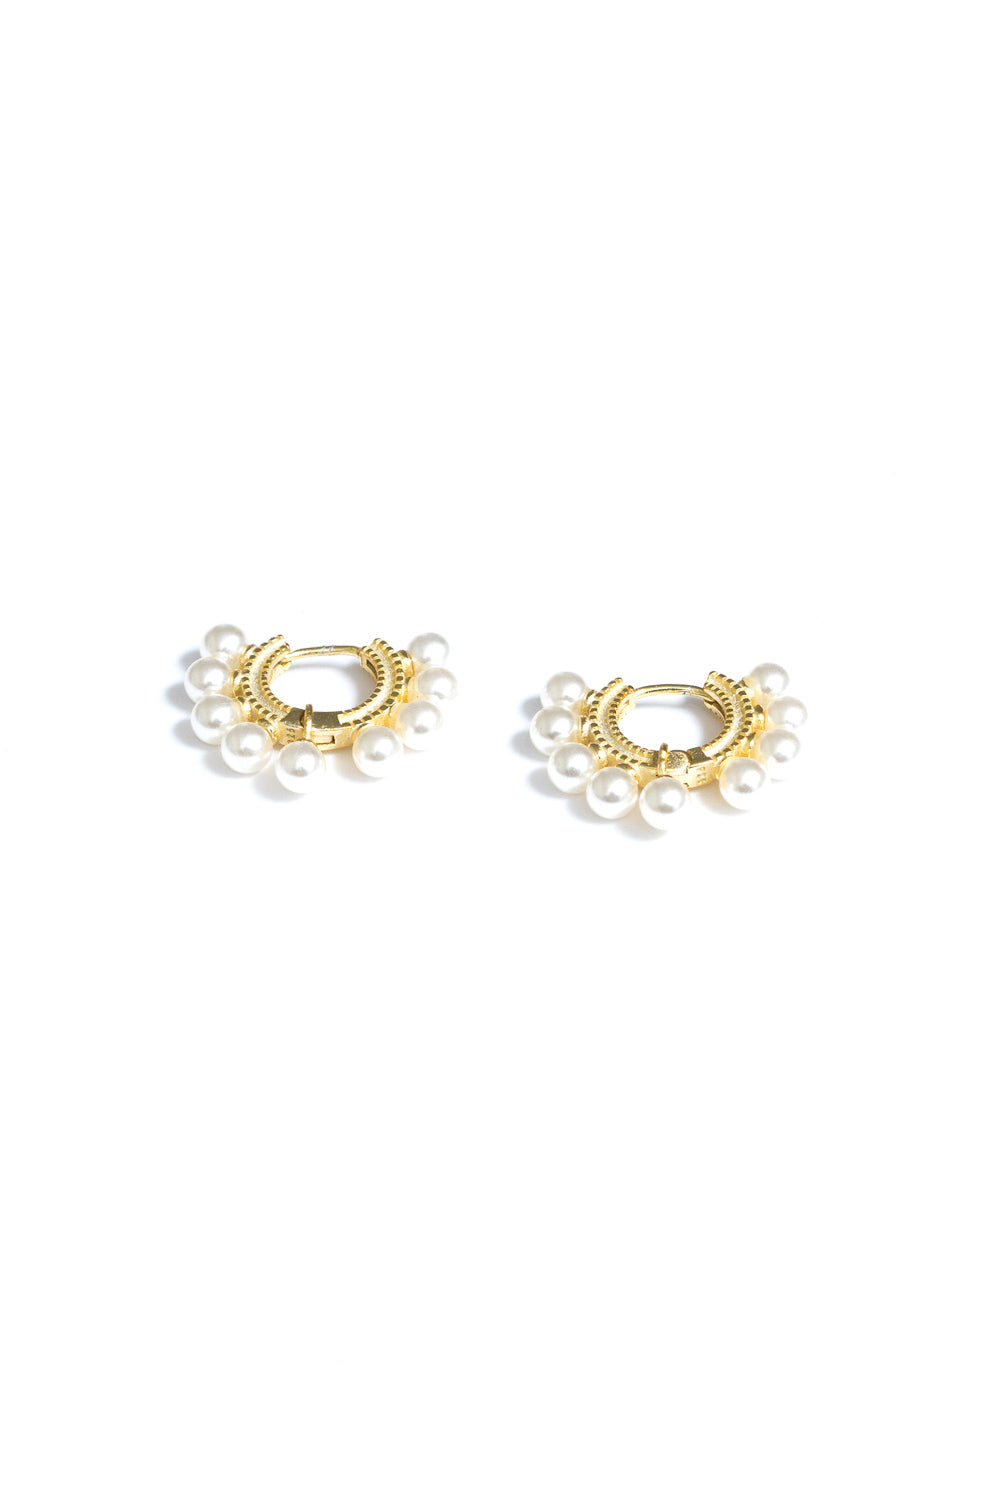 pearl mini gold hoop huggie hoop earrings by janna conner